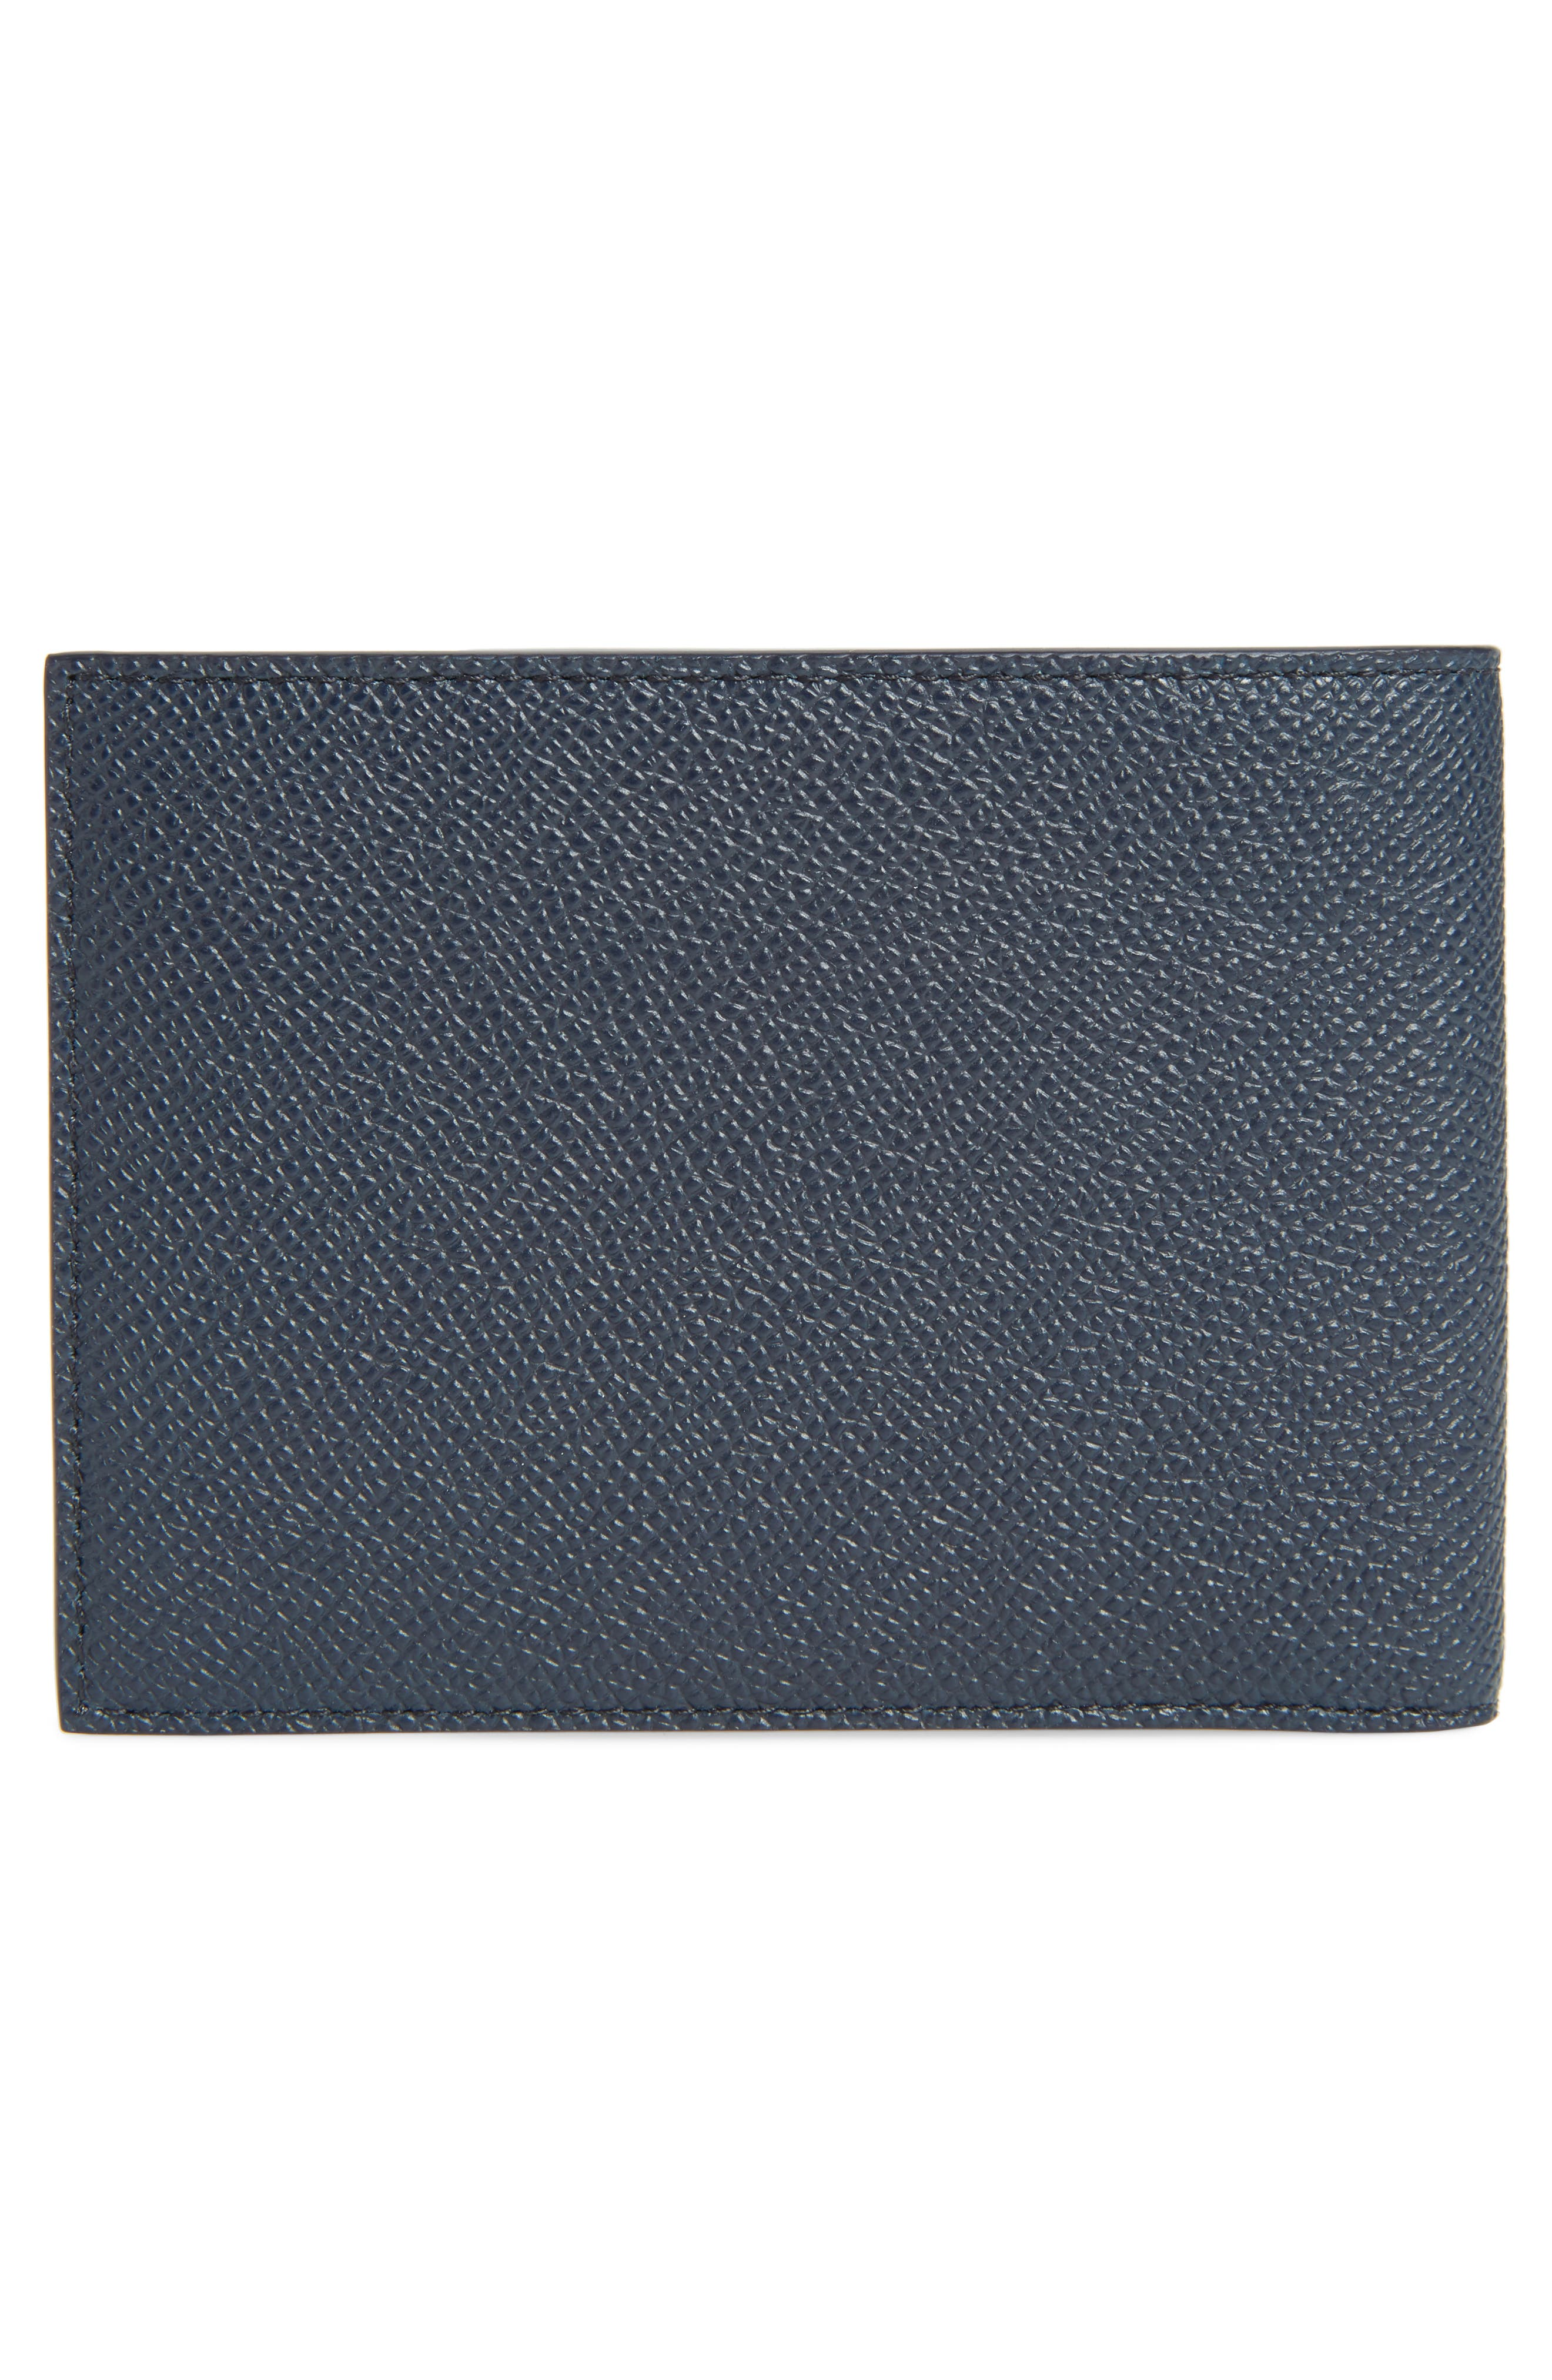 Eros Textured Leather Wallet,                             Alternate thumbnail 3, color,                             NAVY